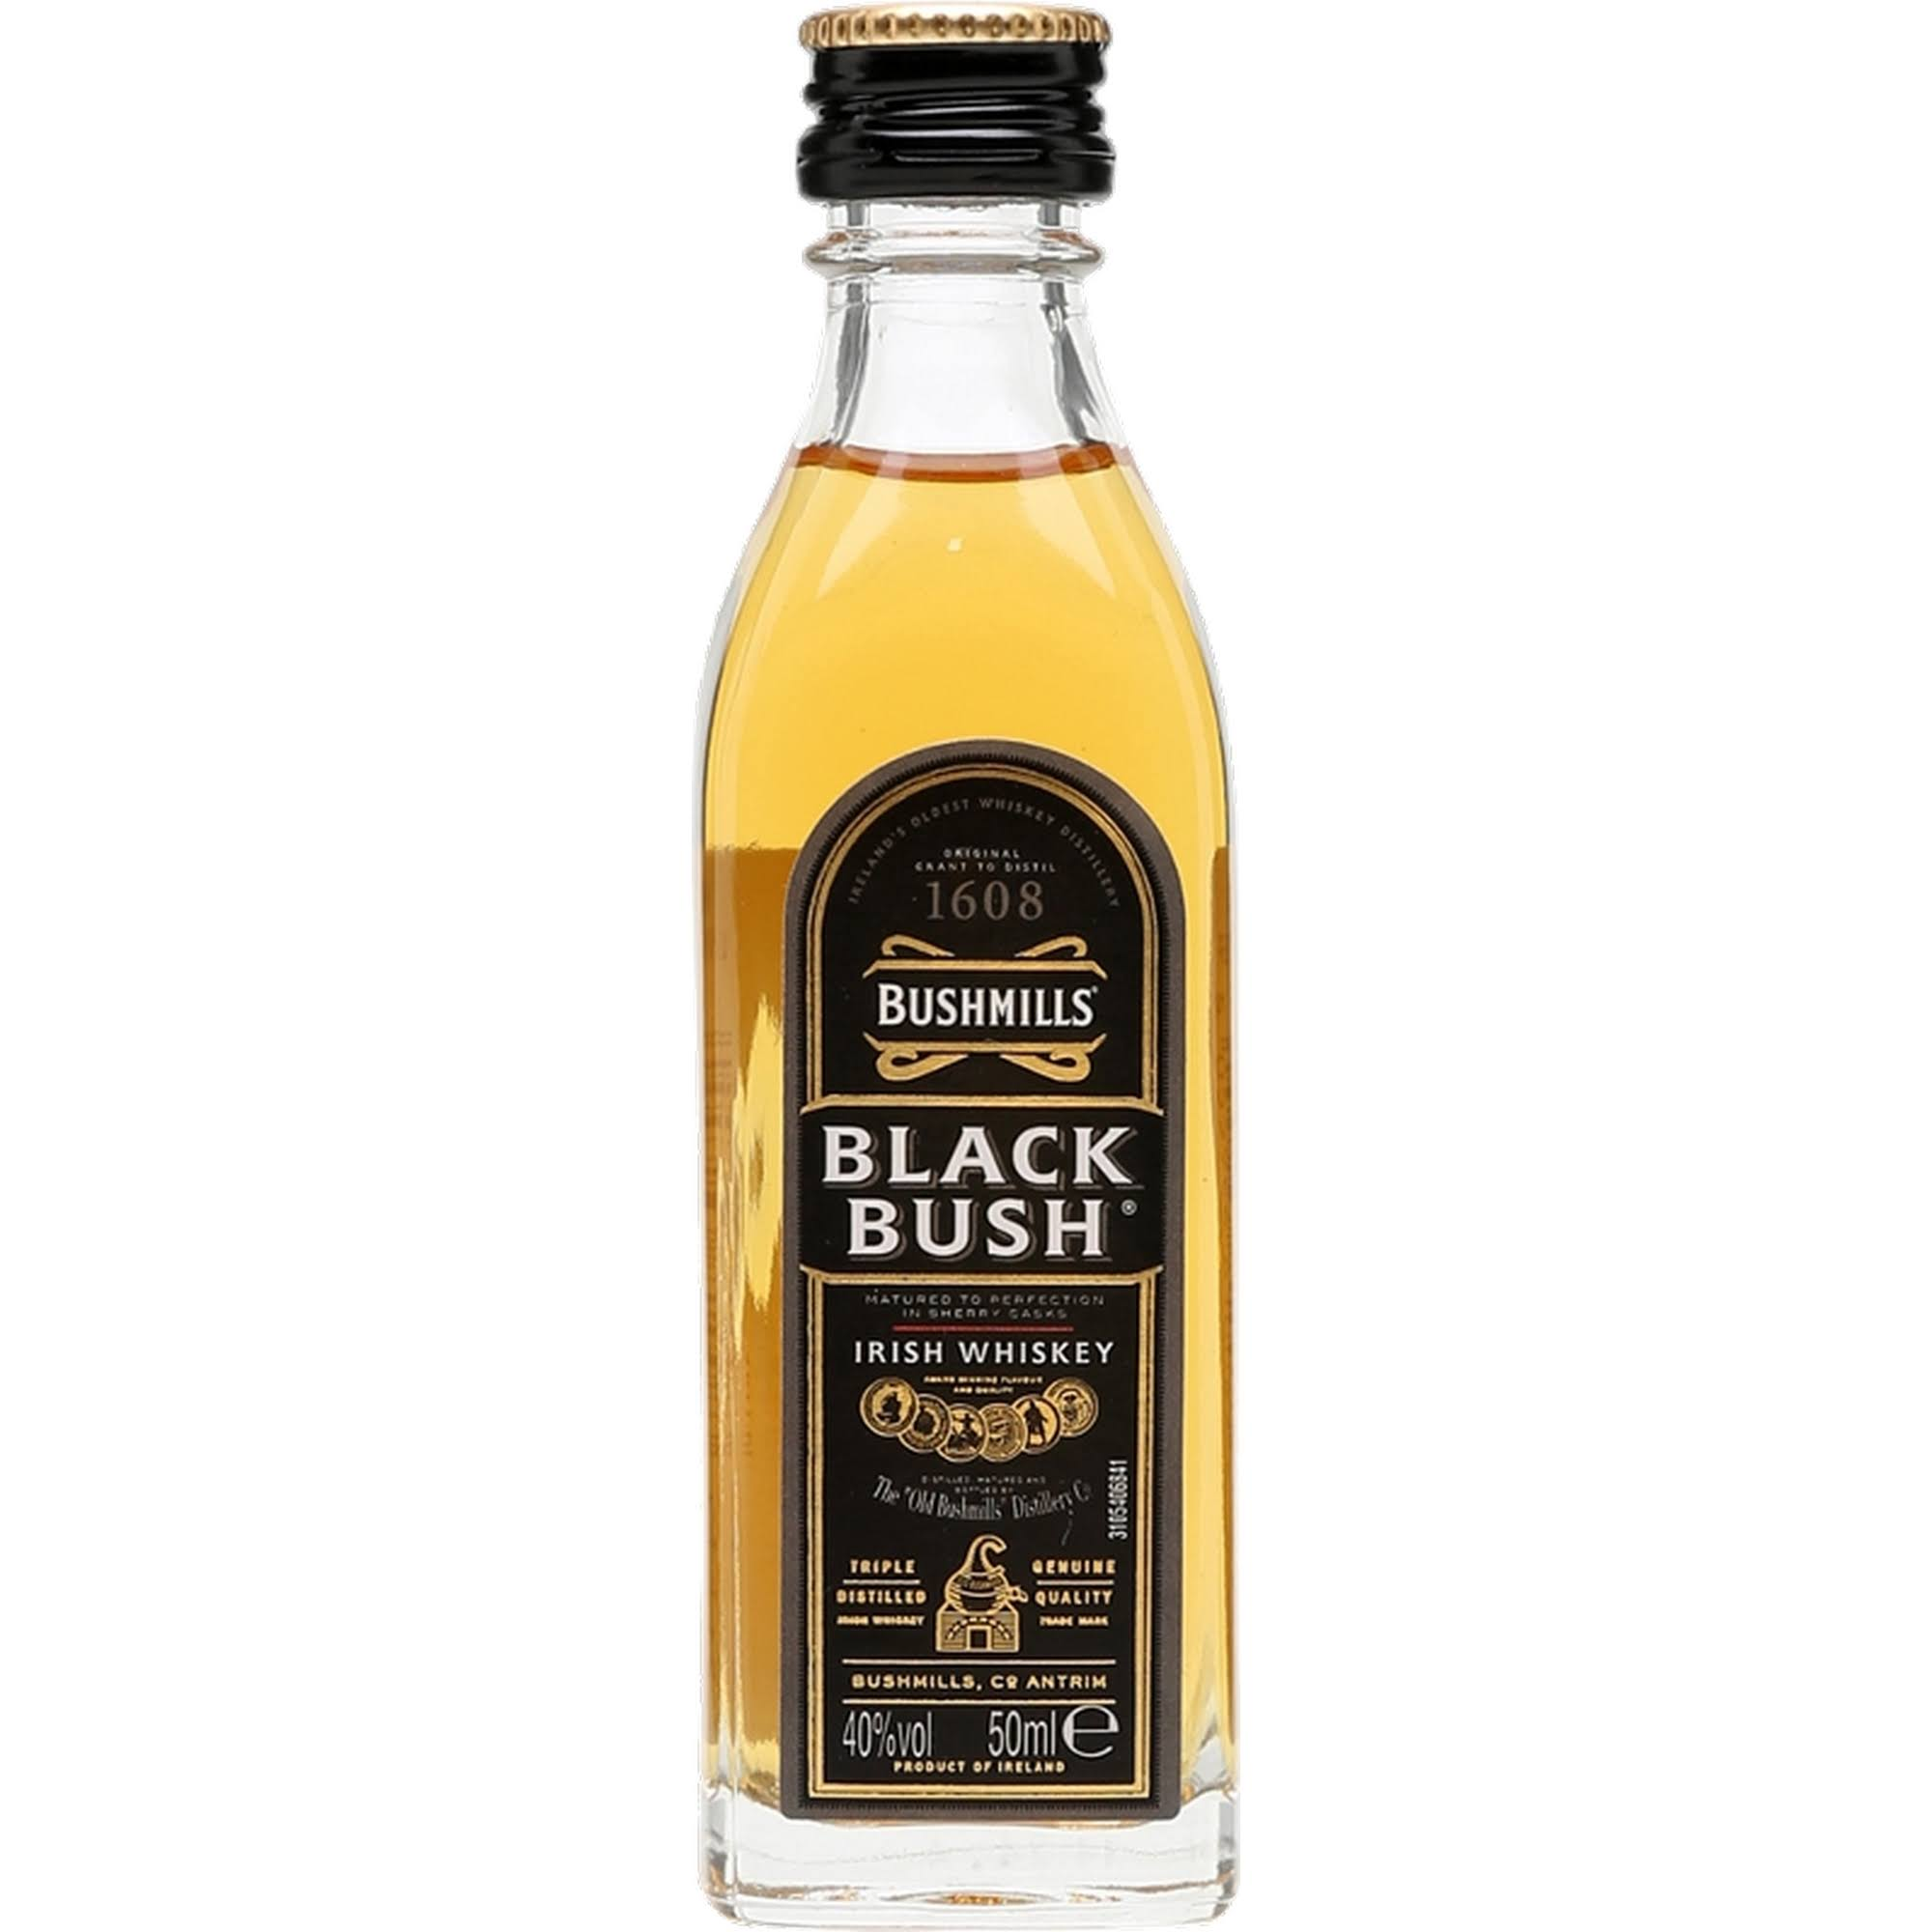 Bushmills Black Bush Miniature Whisky - 50ml